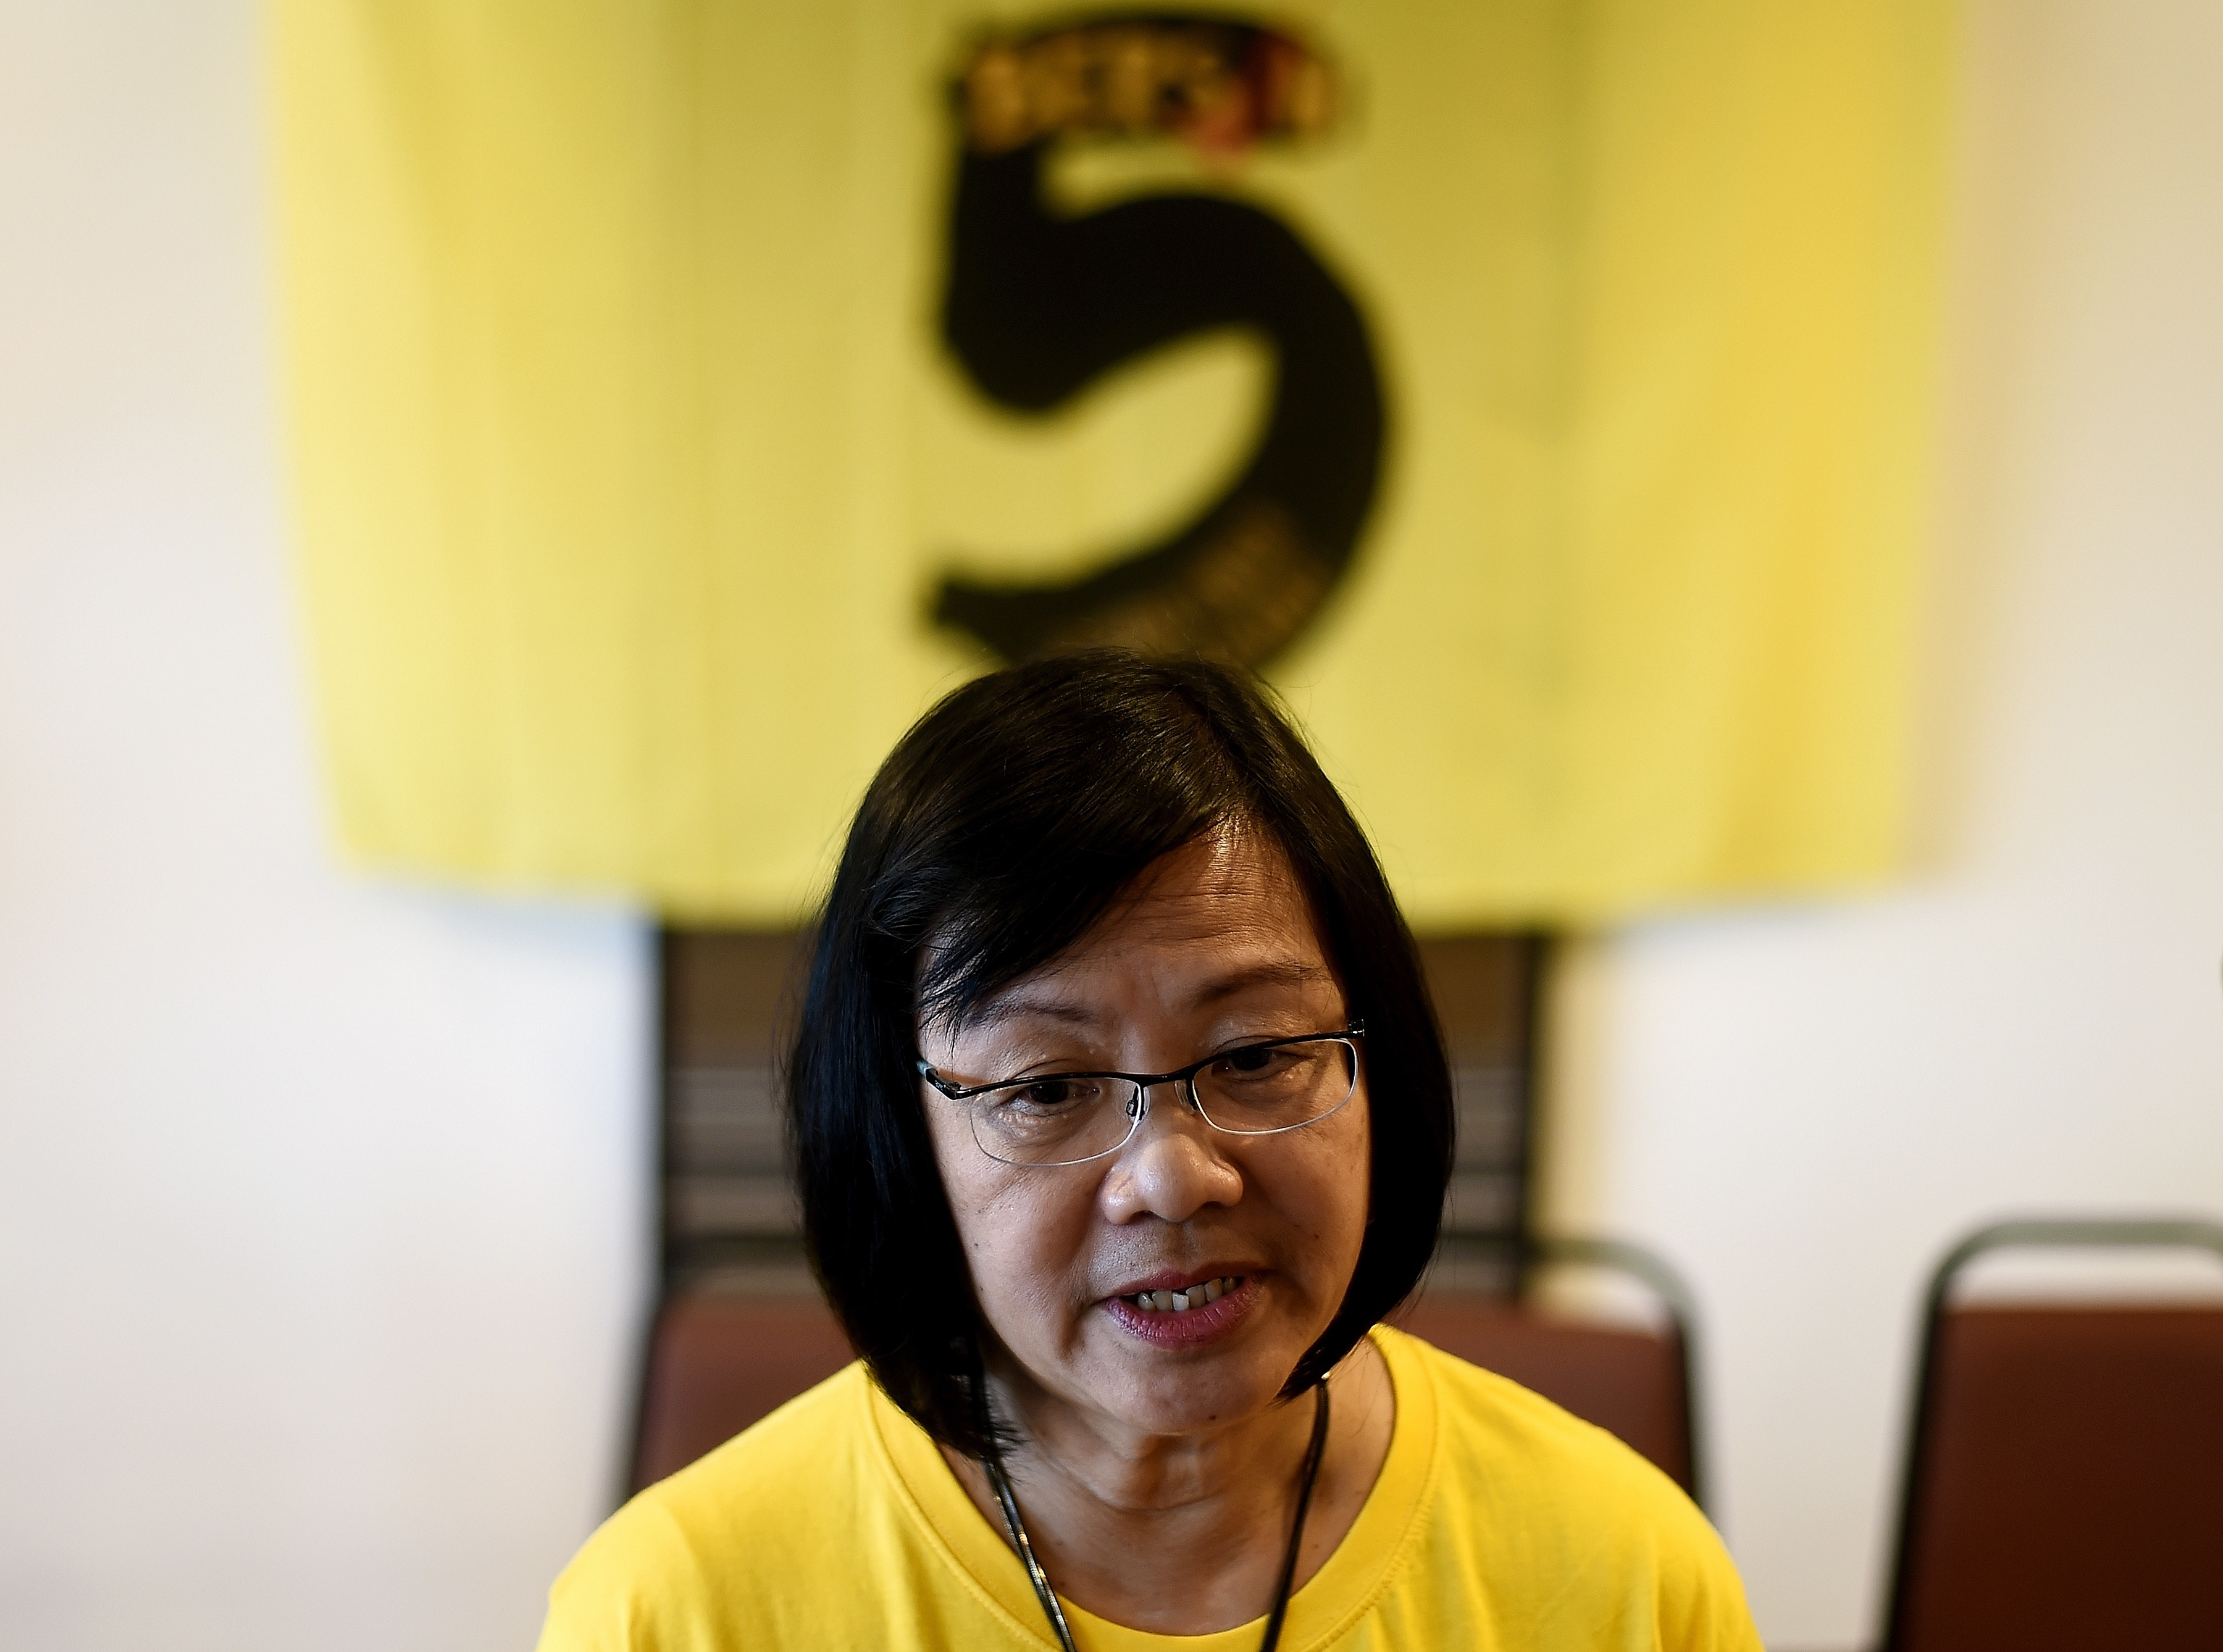 Maria Chin Abdullah, chairperson of the coalition of Malaysian NGOs and activist groups known as Bersih, which translates as clean in the local Malay language, speaks with journalists in Kuala Lumpur on Sept. 14, 2016